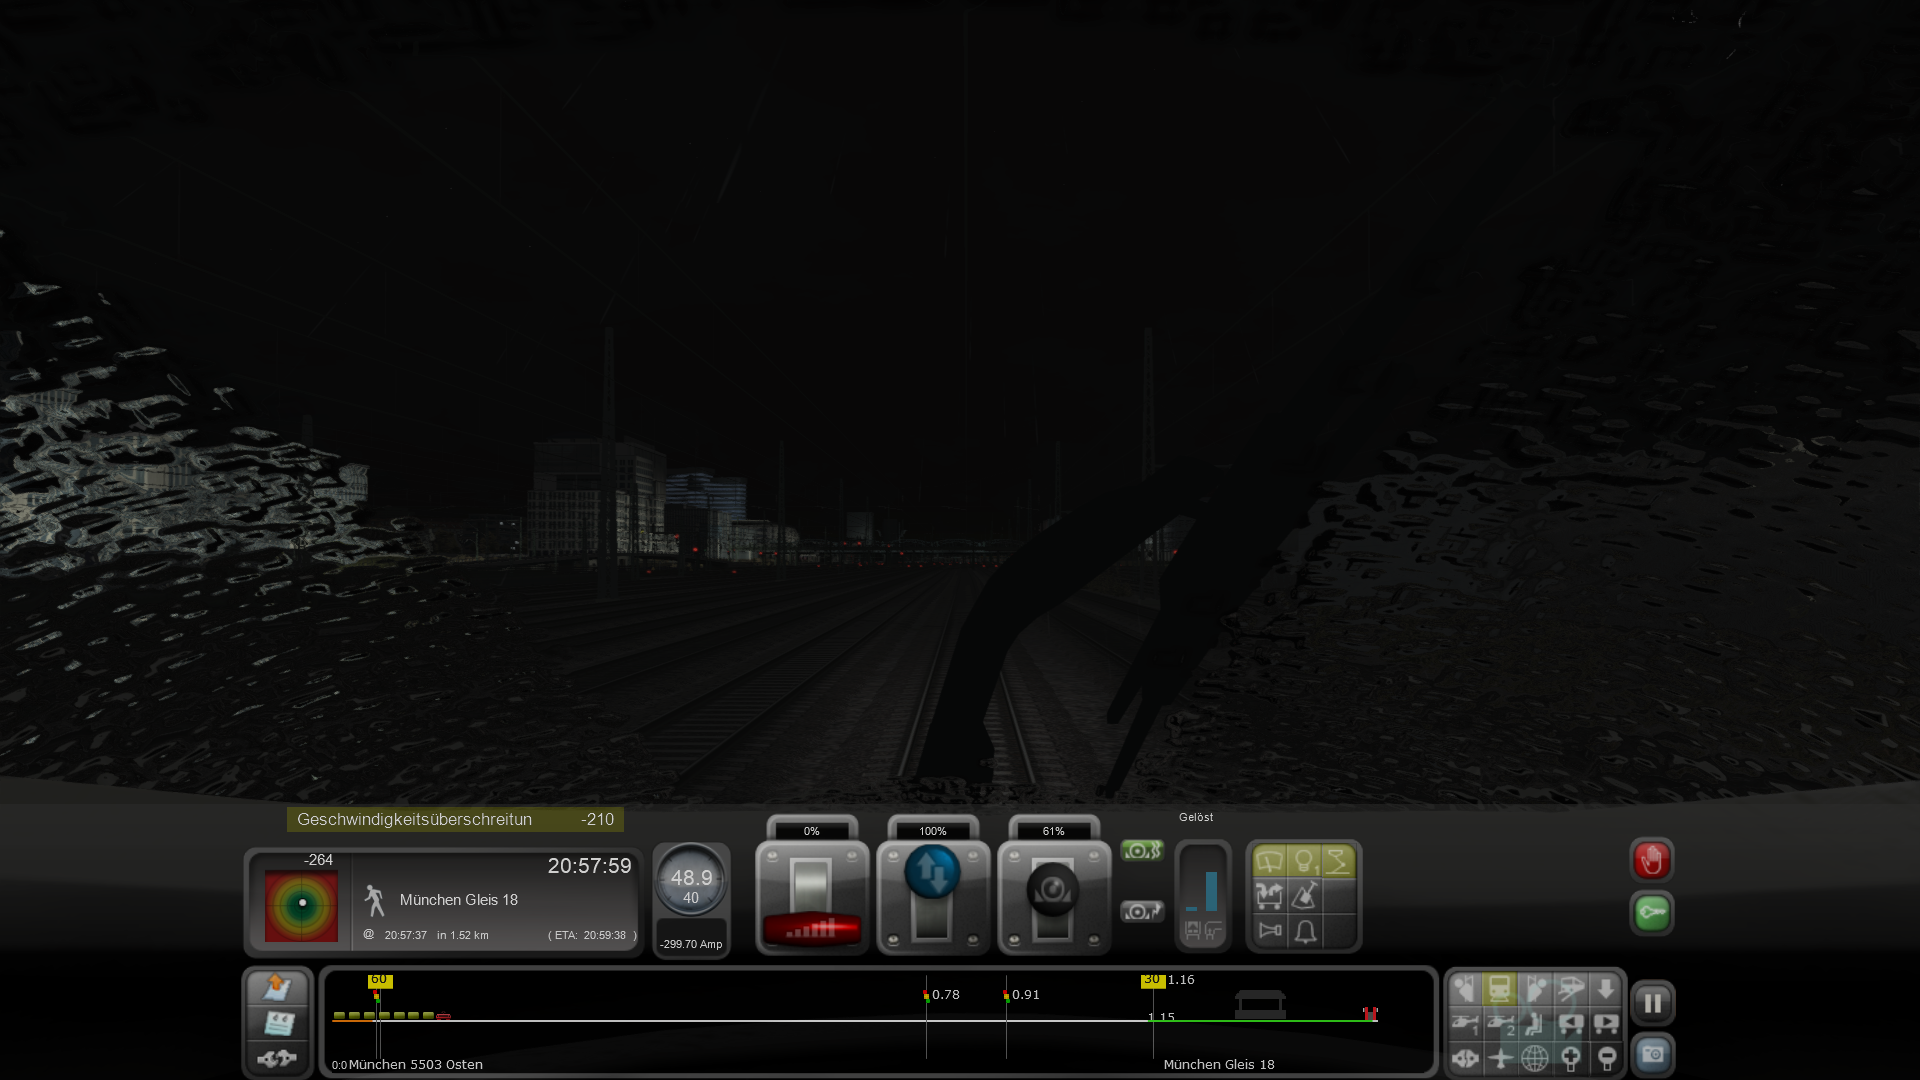 RailworksTrainSimulator050120172302202673991.png